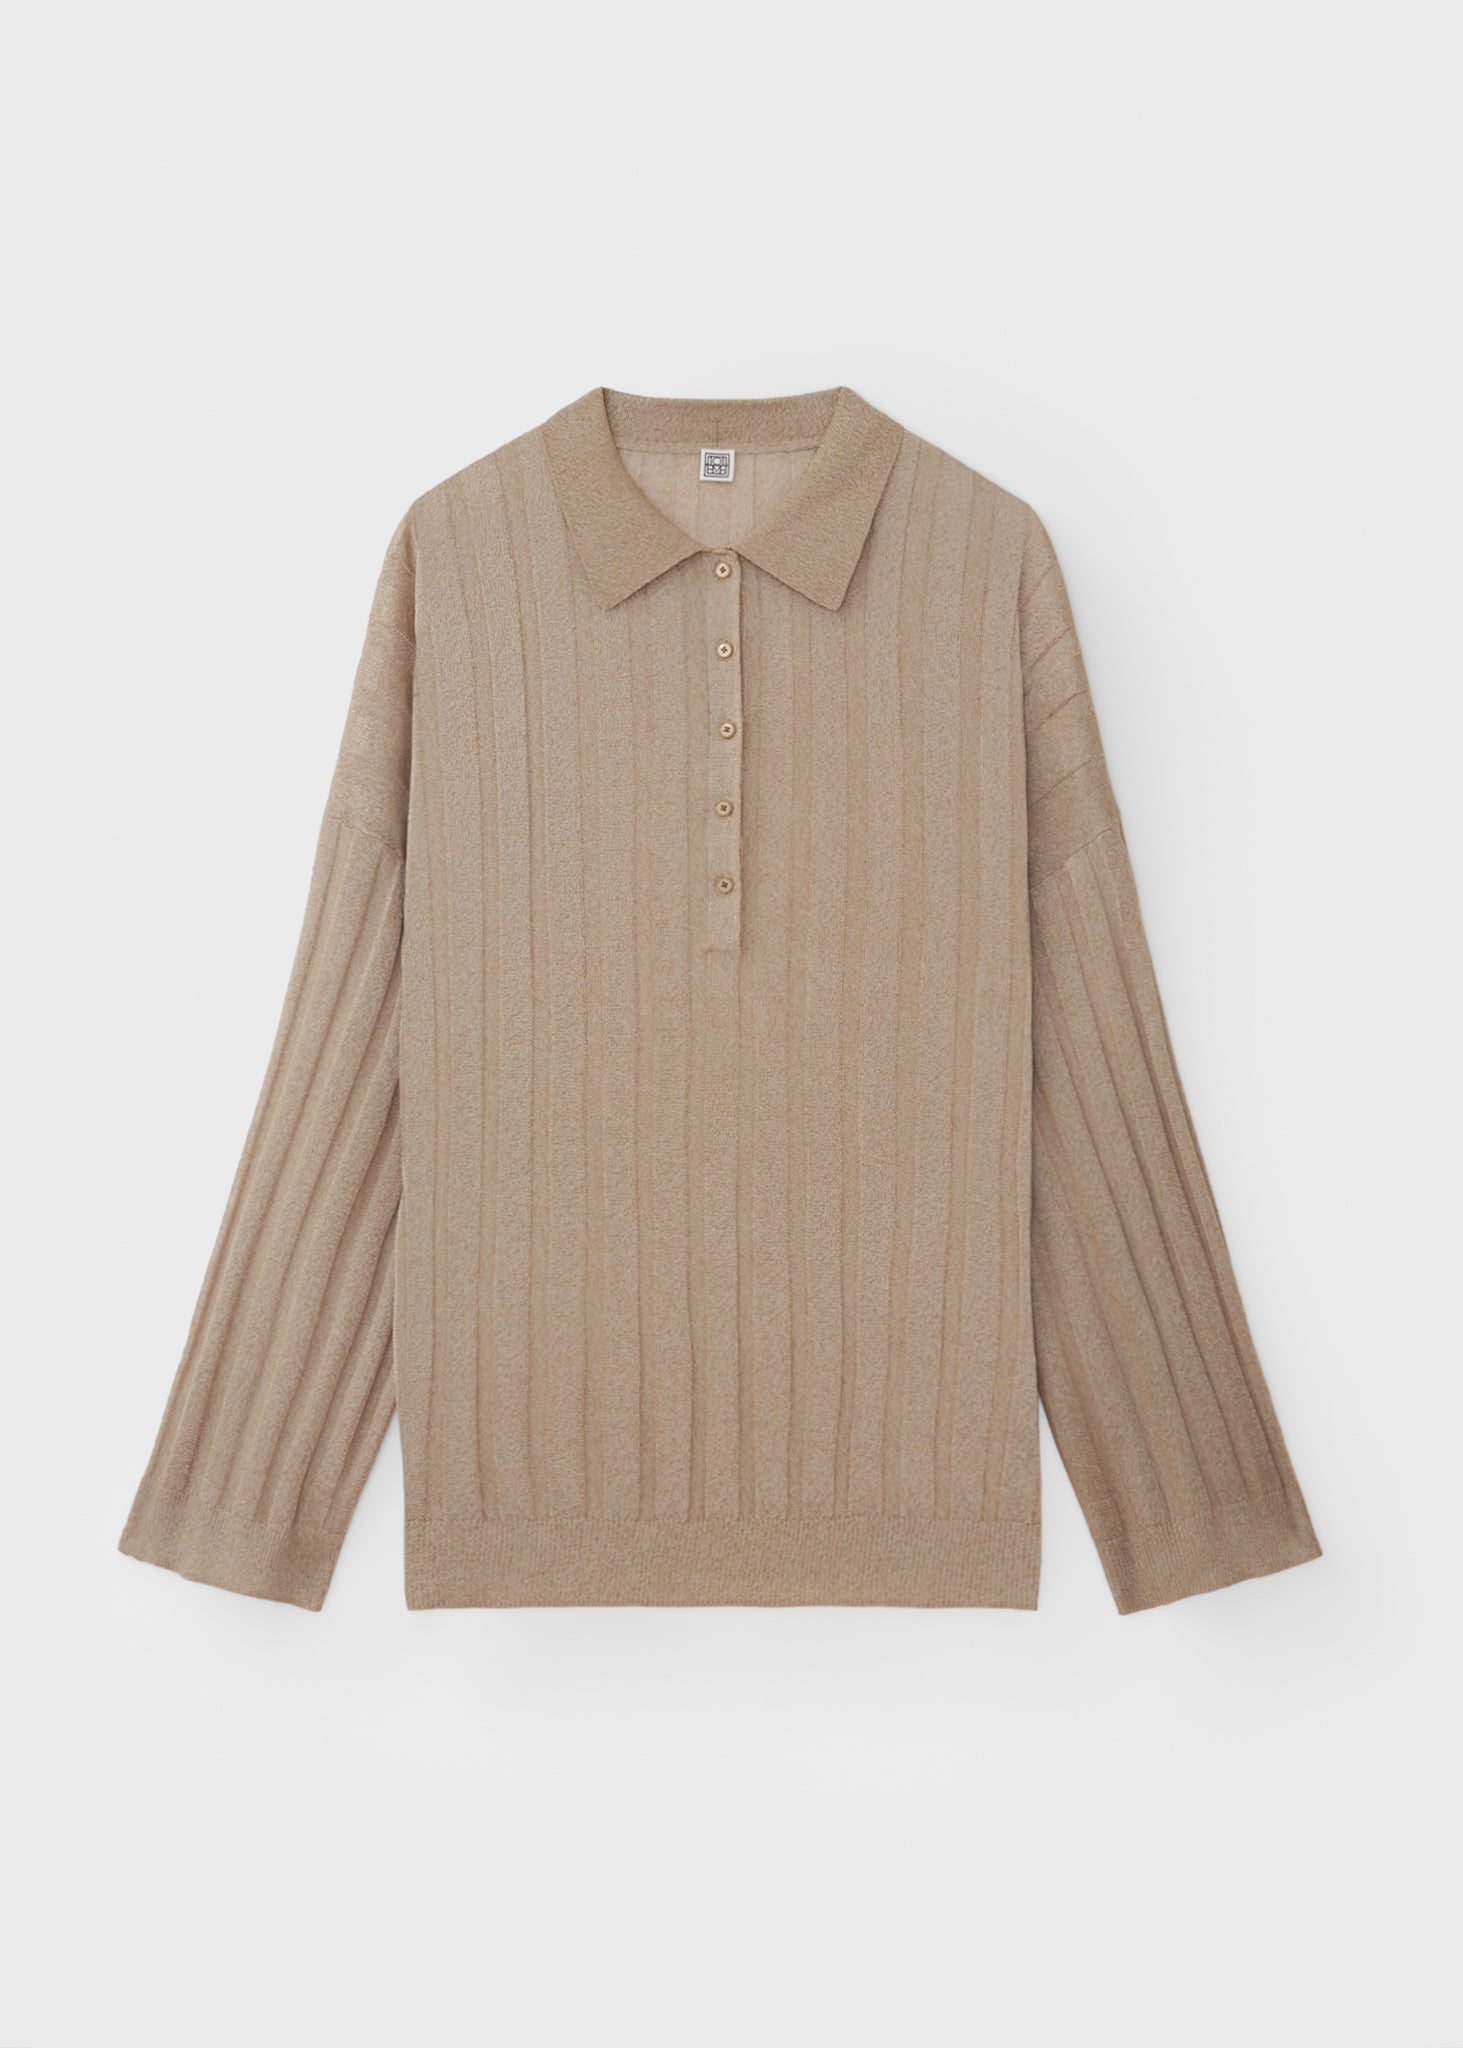 Polo shirt knit champagne